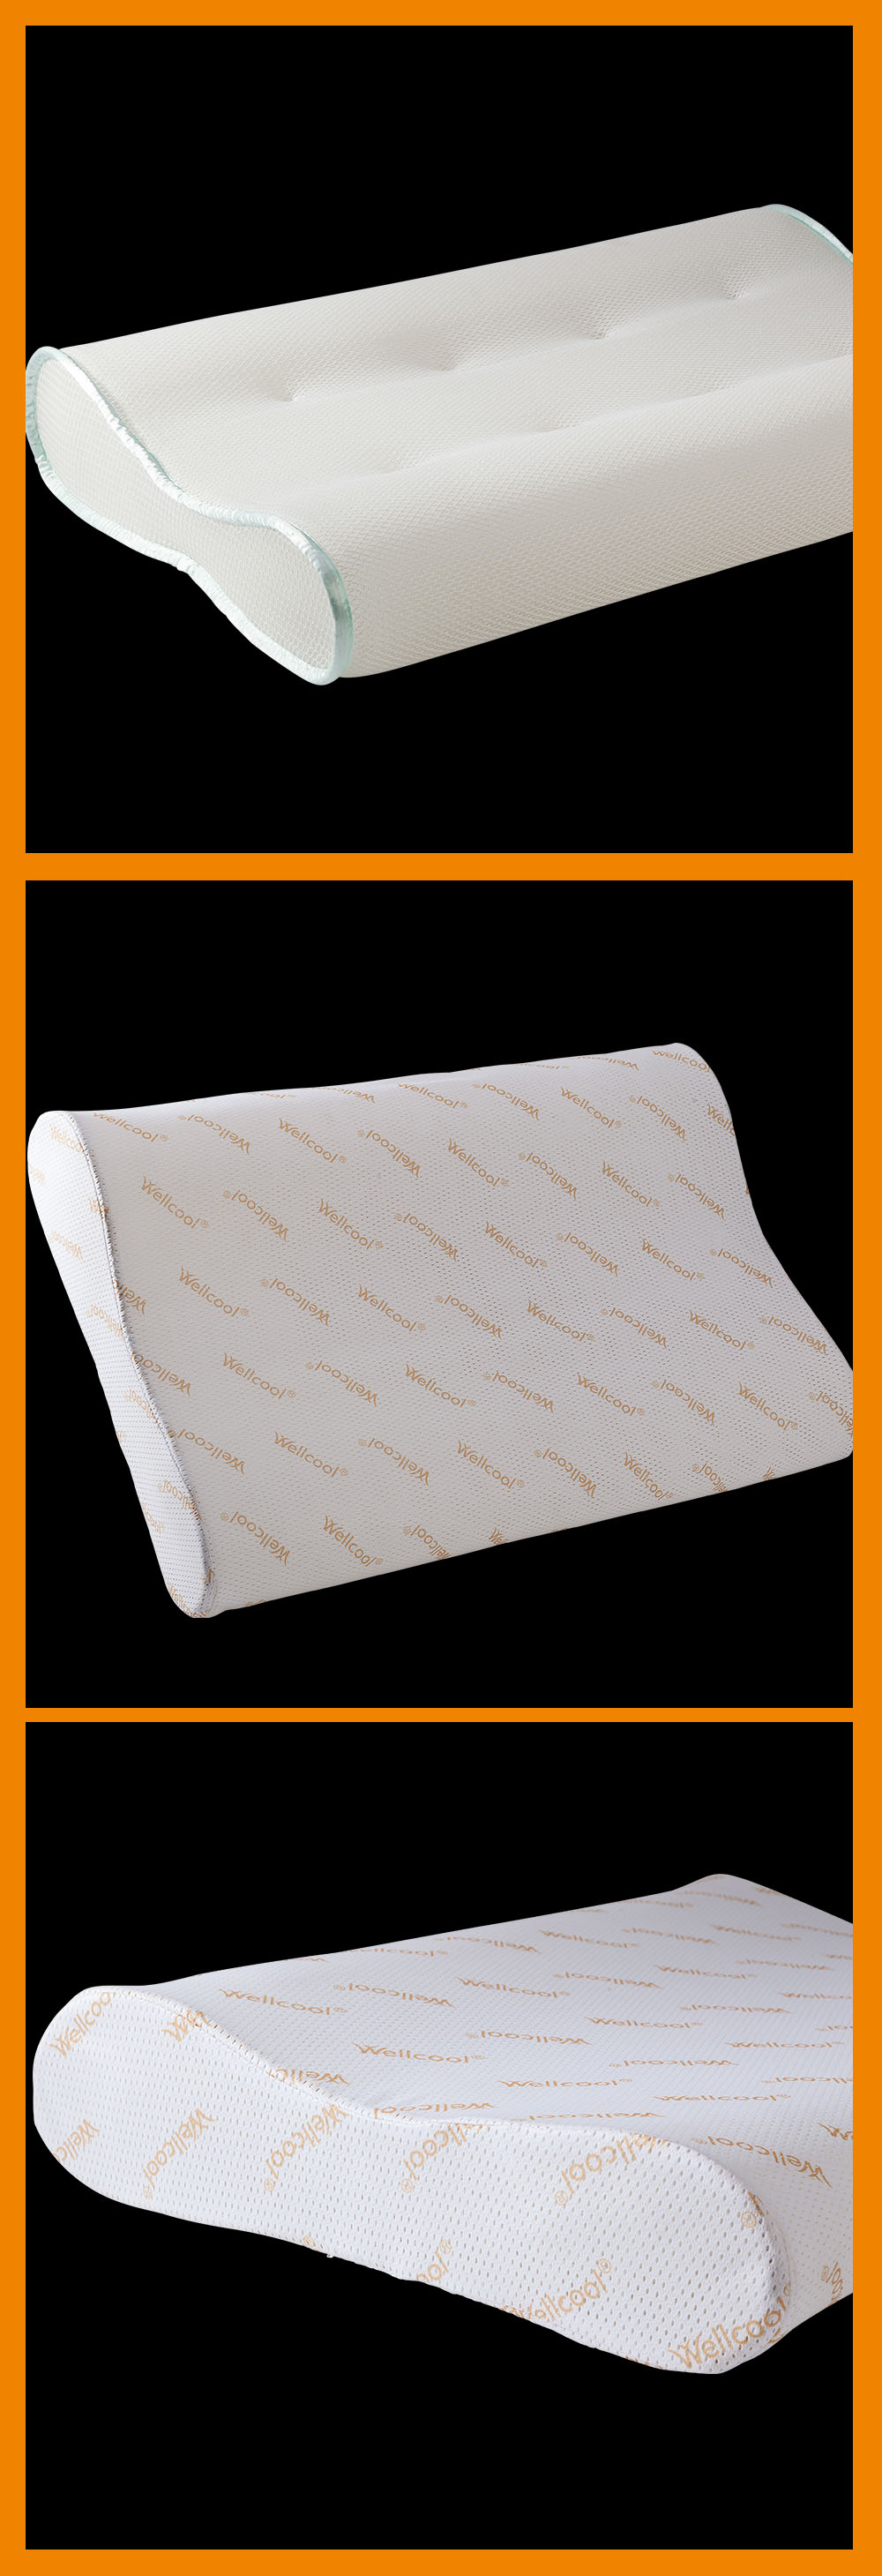 wellcool 3d neck air conditioning knitted spacer fabric pillow